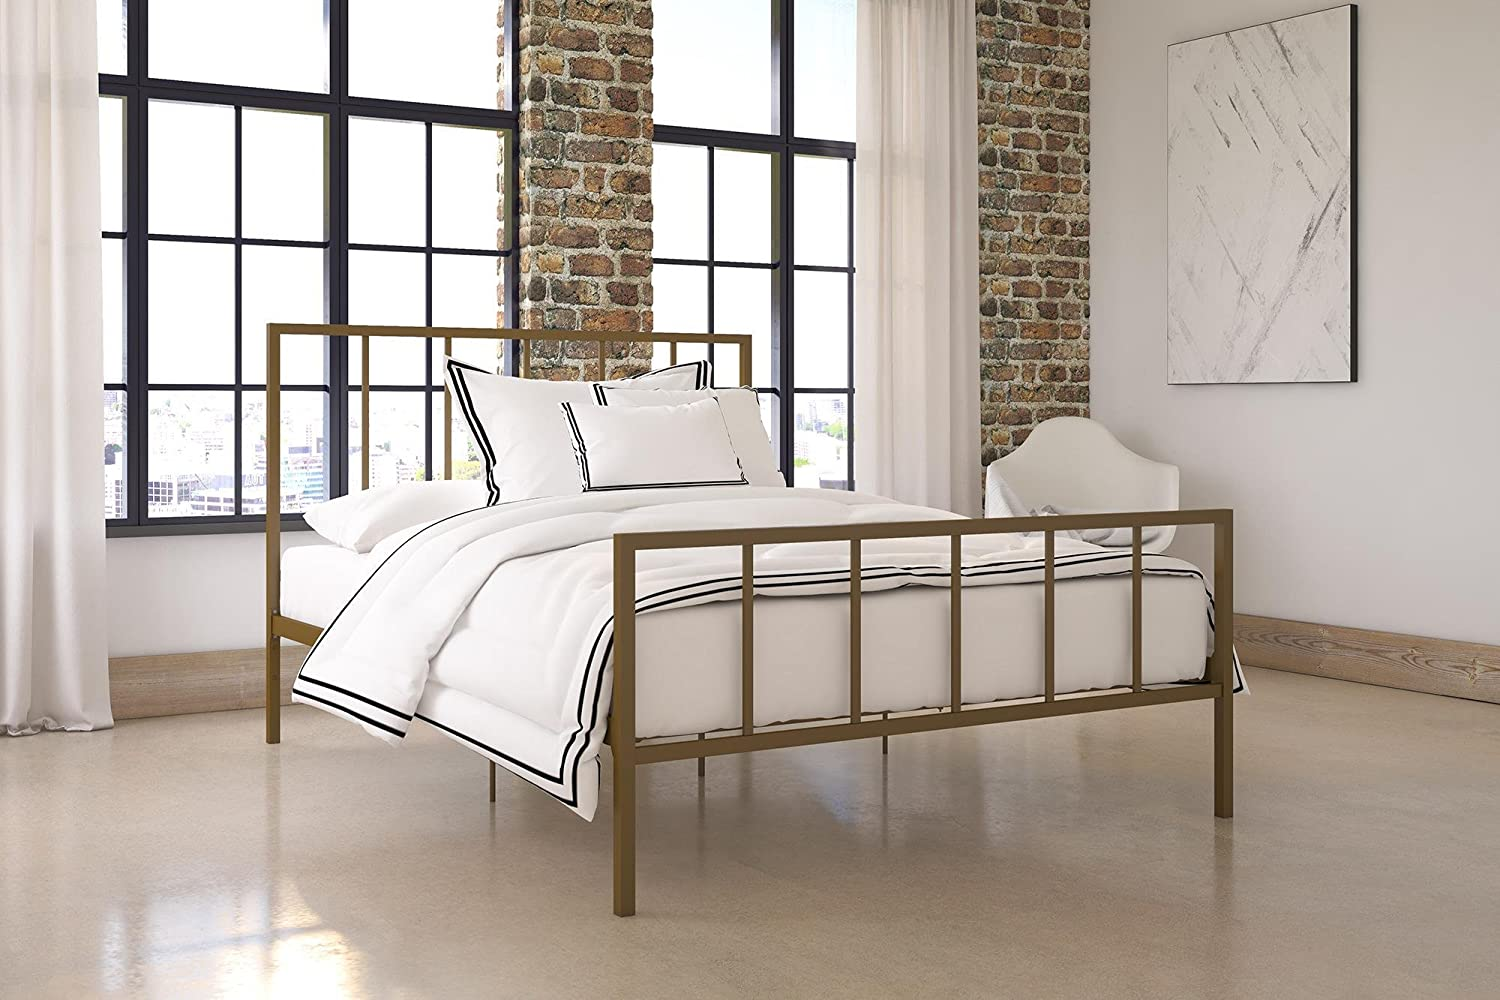 Dhp Stella Metal Bed With Sturdy Metal Frame And Slats, Gold, Queen by Dhp